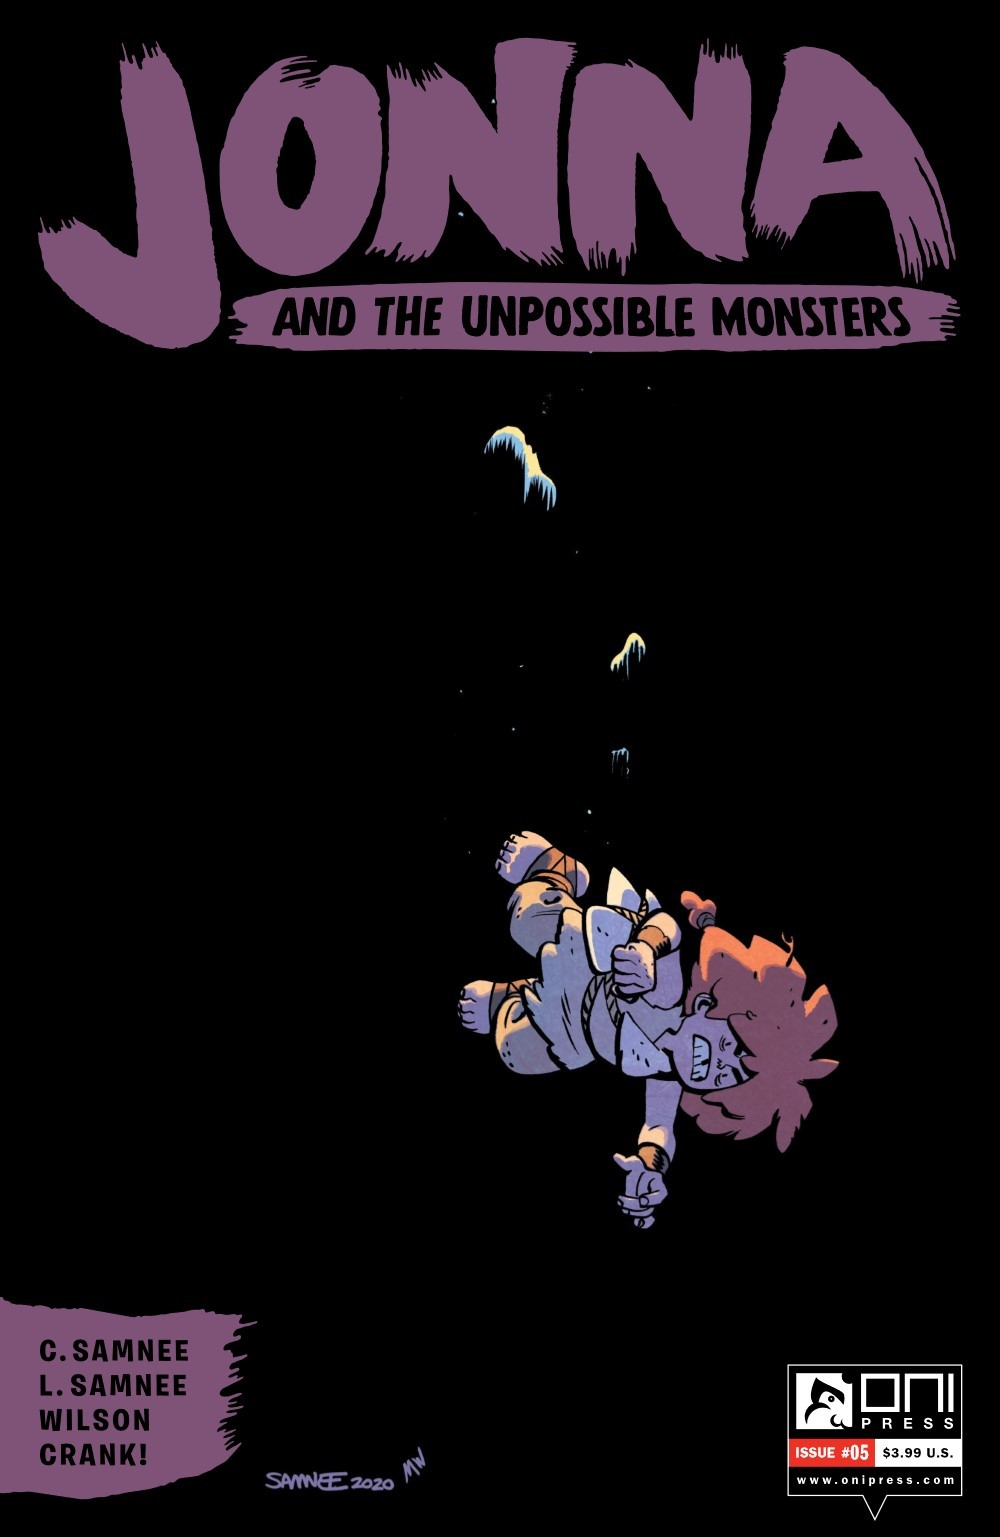 JONNA-5-REFERENCE-01 ComicList: Oni Press New Releases for 08/18/2021